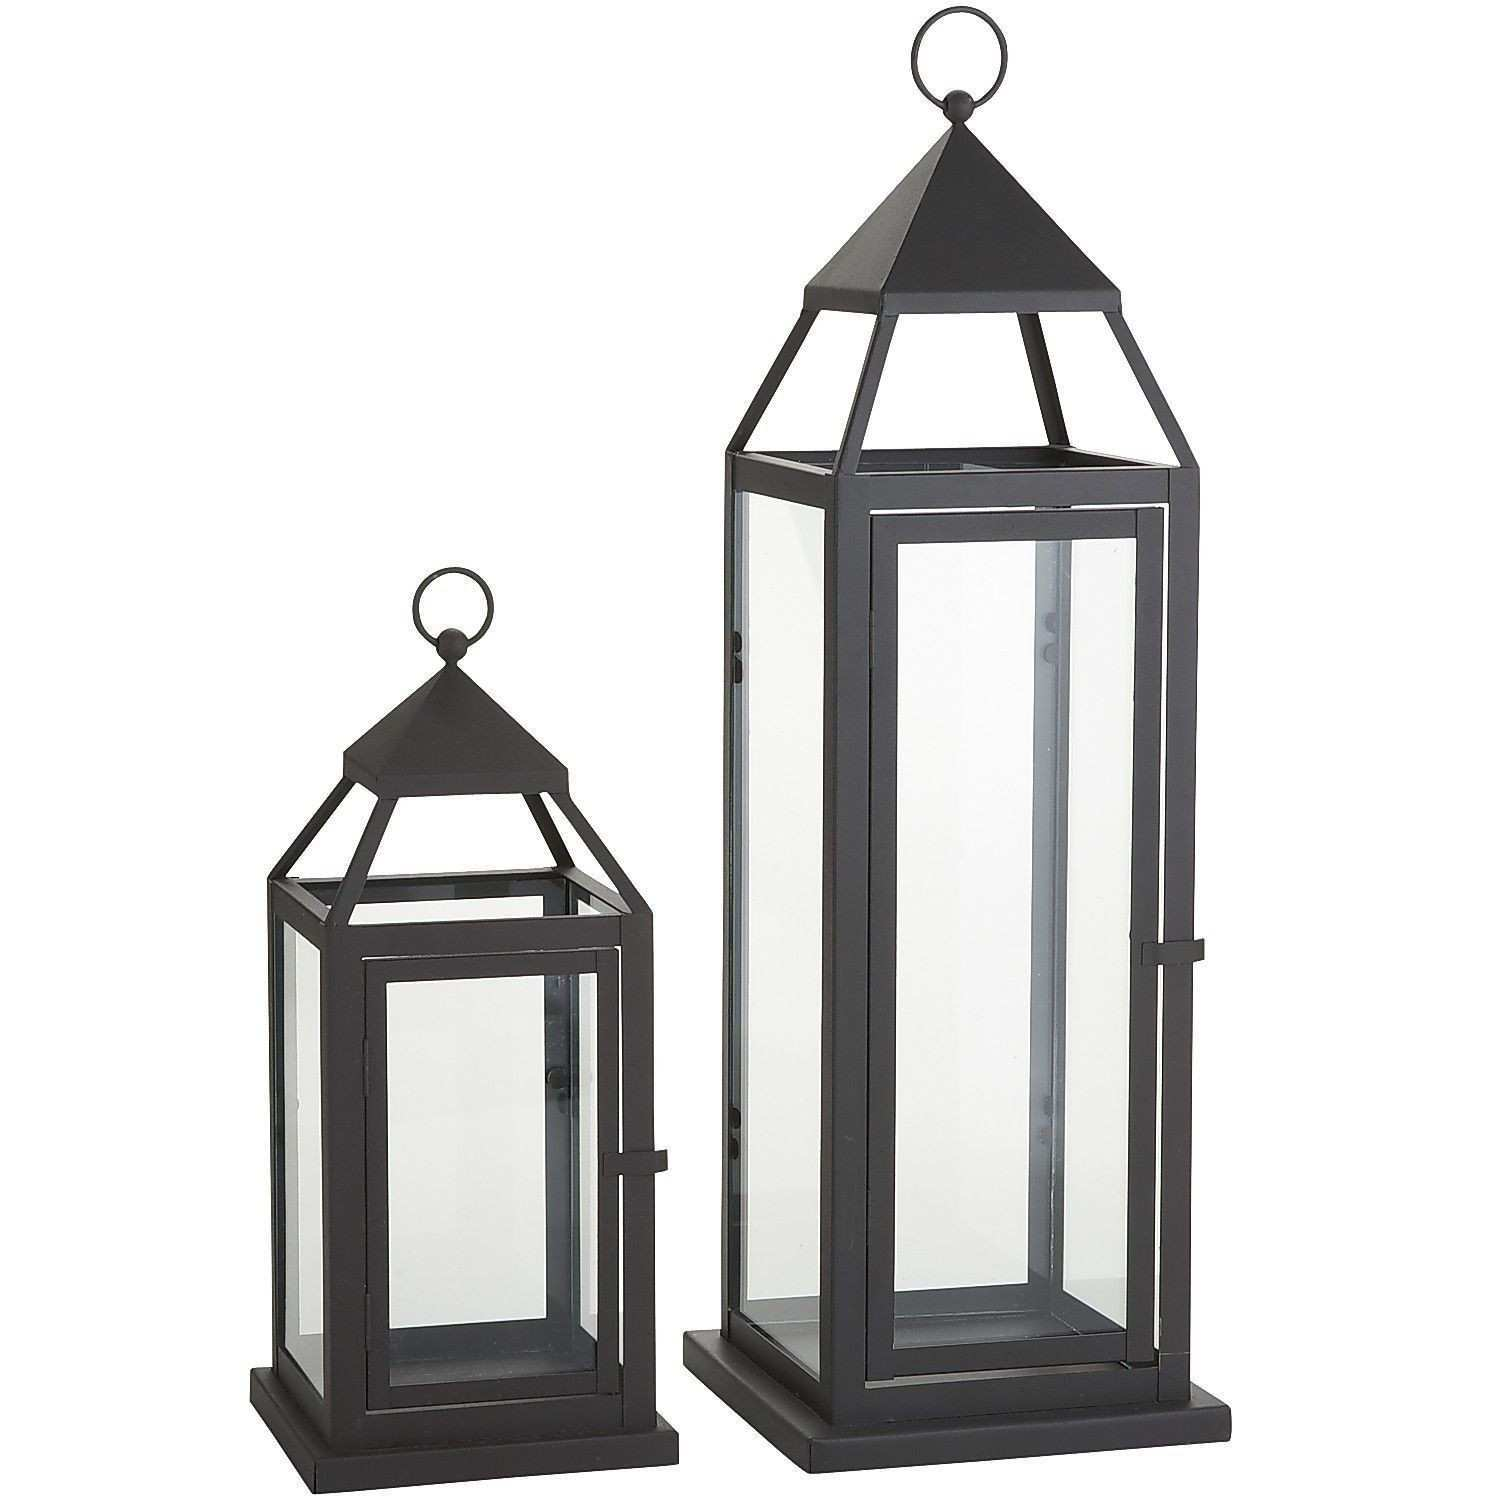 Most Pinned LALs 2 Pottery Barn Malta Lantern